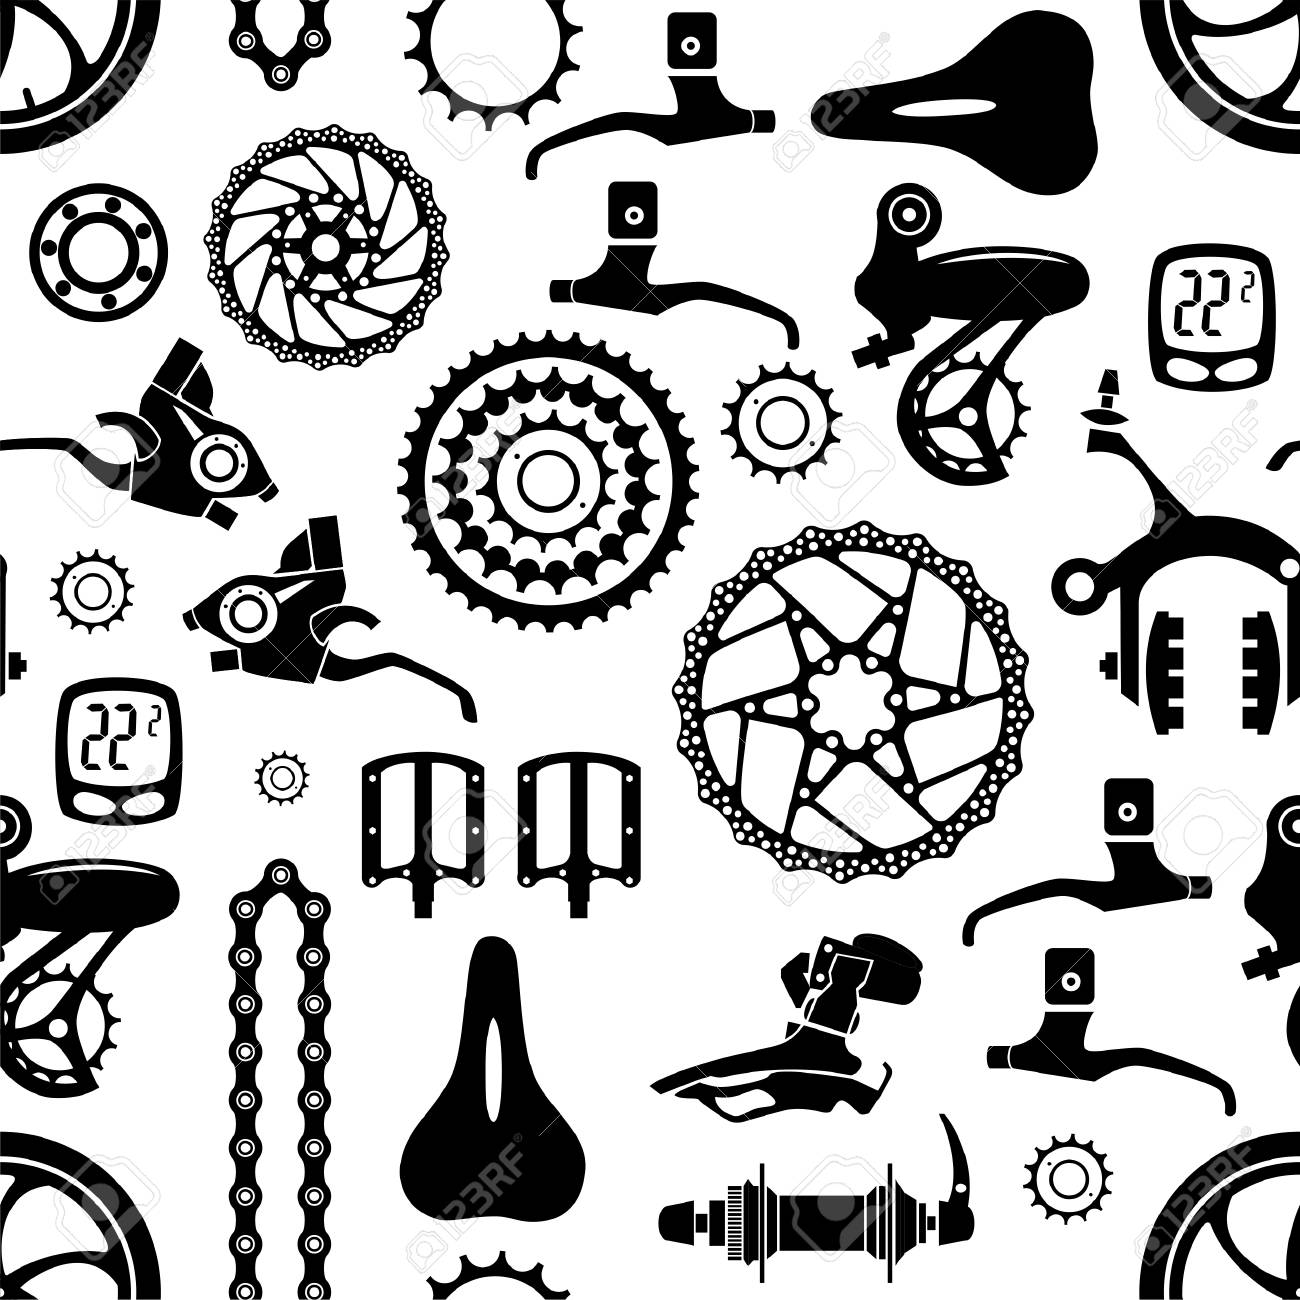 Bicycles. Seamless vector pattern with bicycle parts.